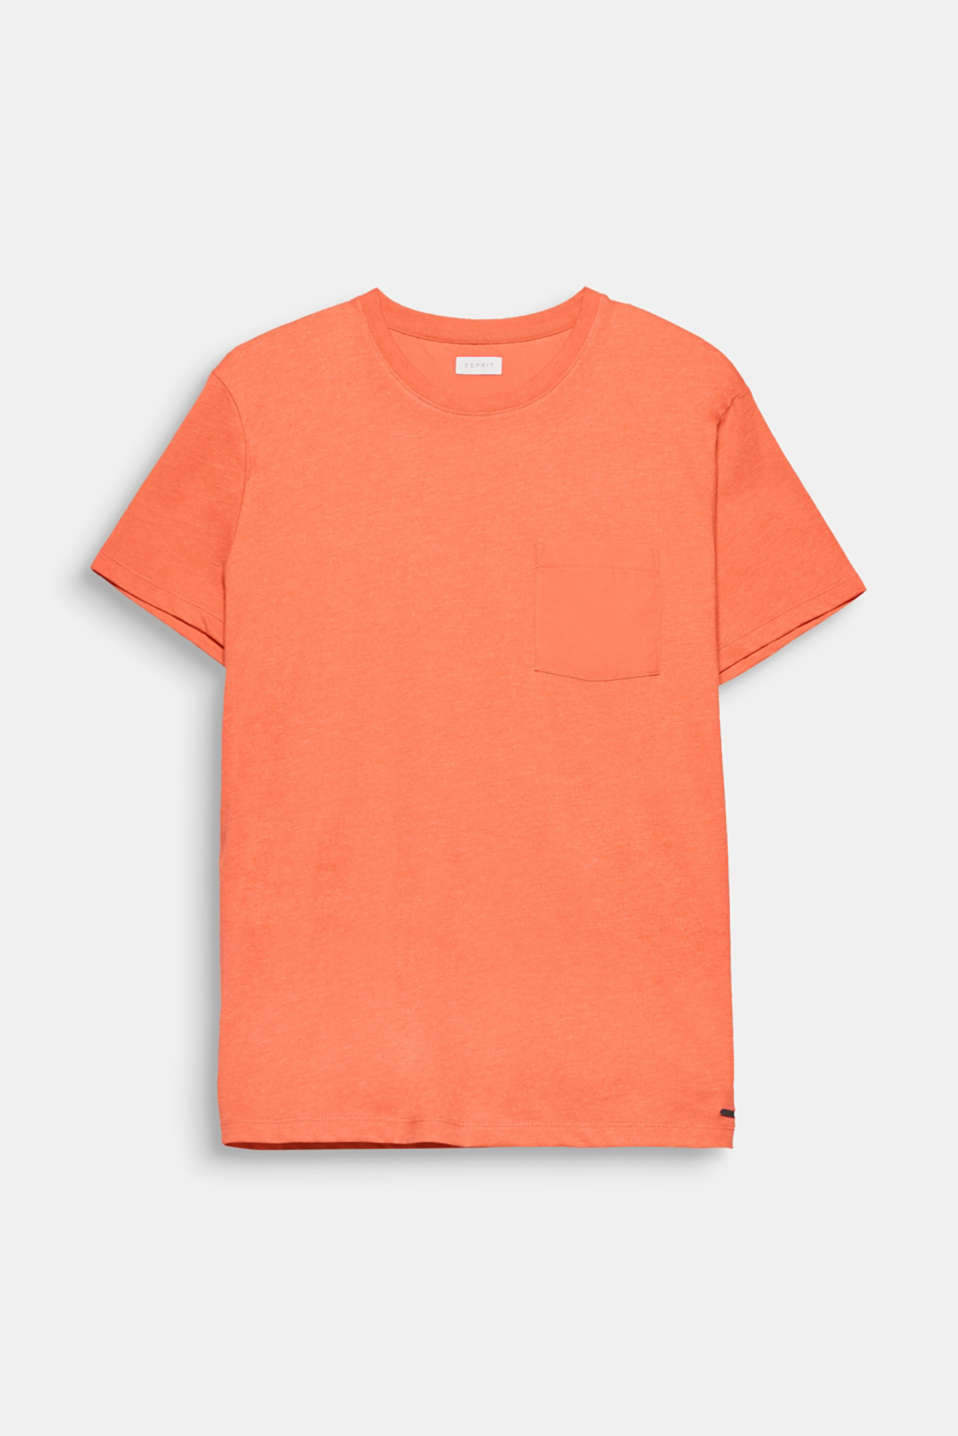 The vibrant colour and timeless, basic design make this T-shirt a favourite piece.